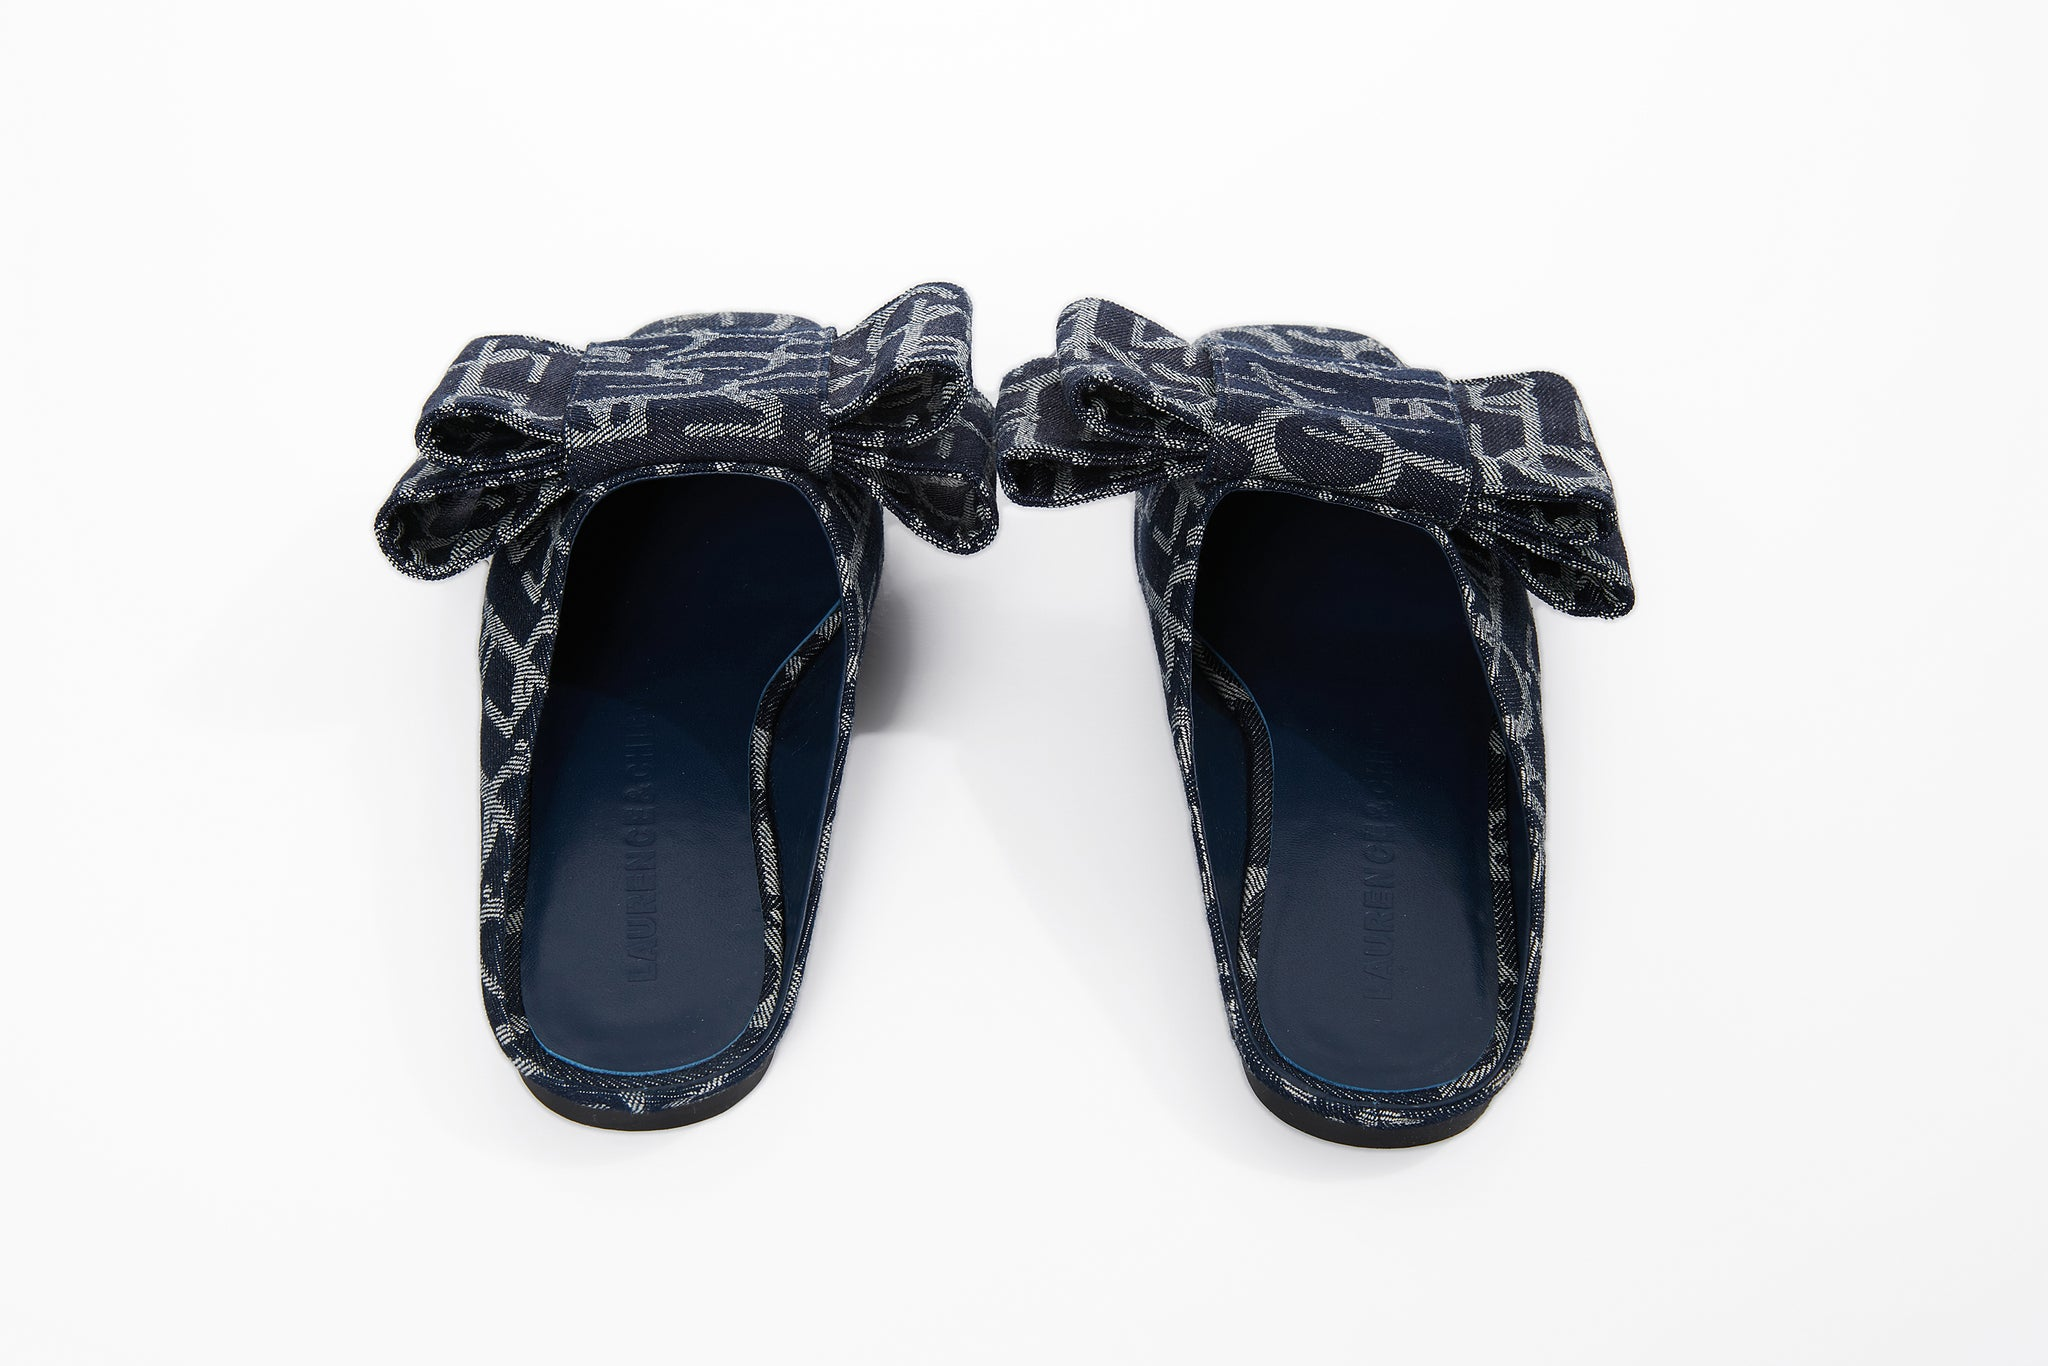 Bowtie Laulau Chichi Slippers, Dark Blue